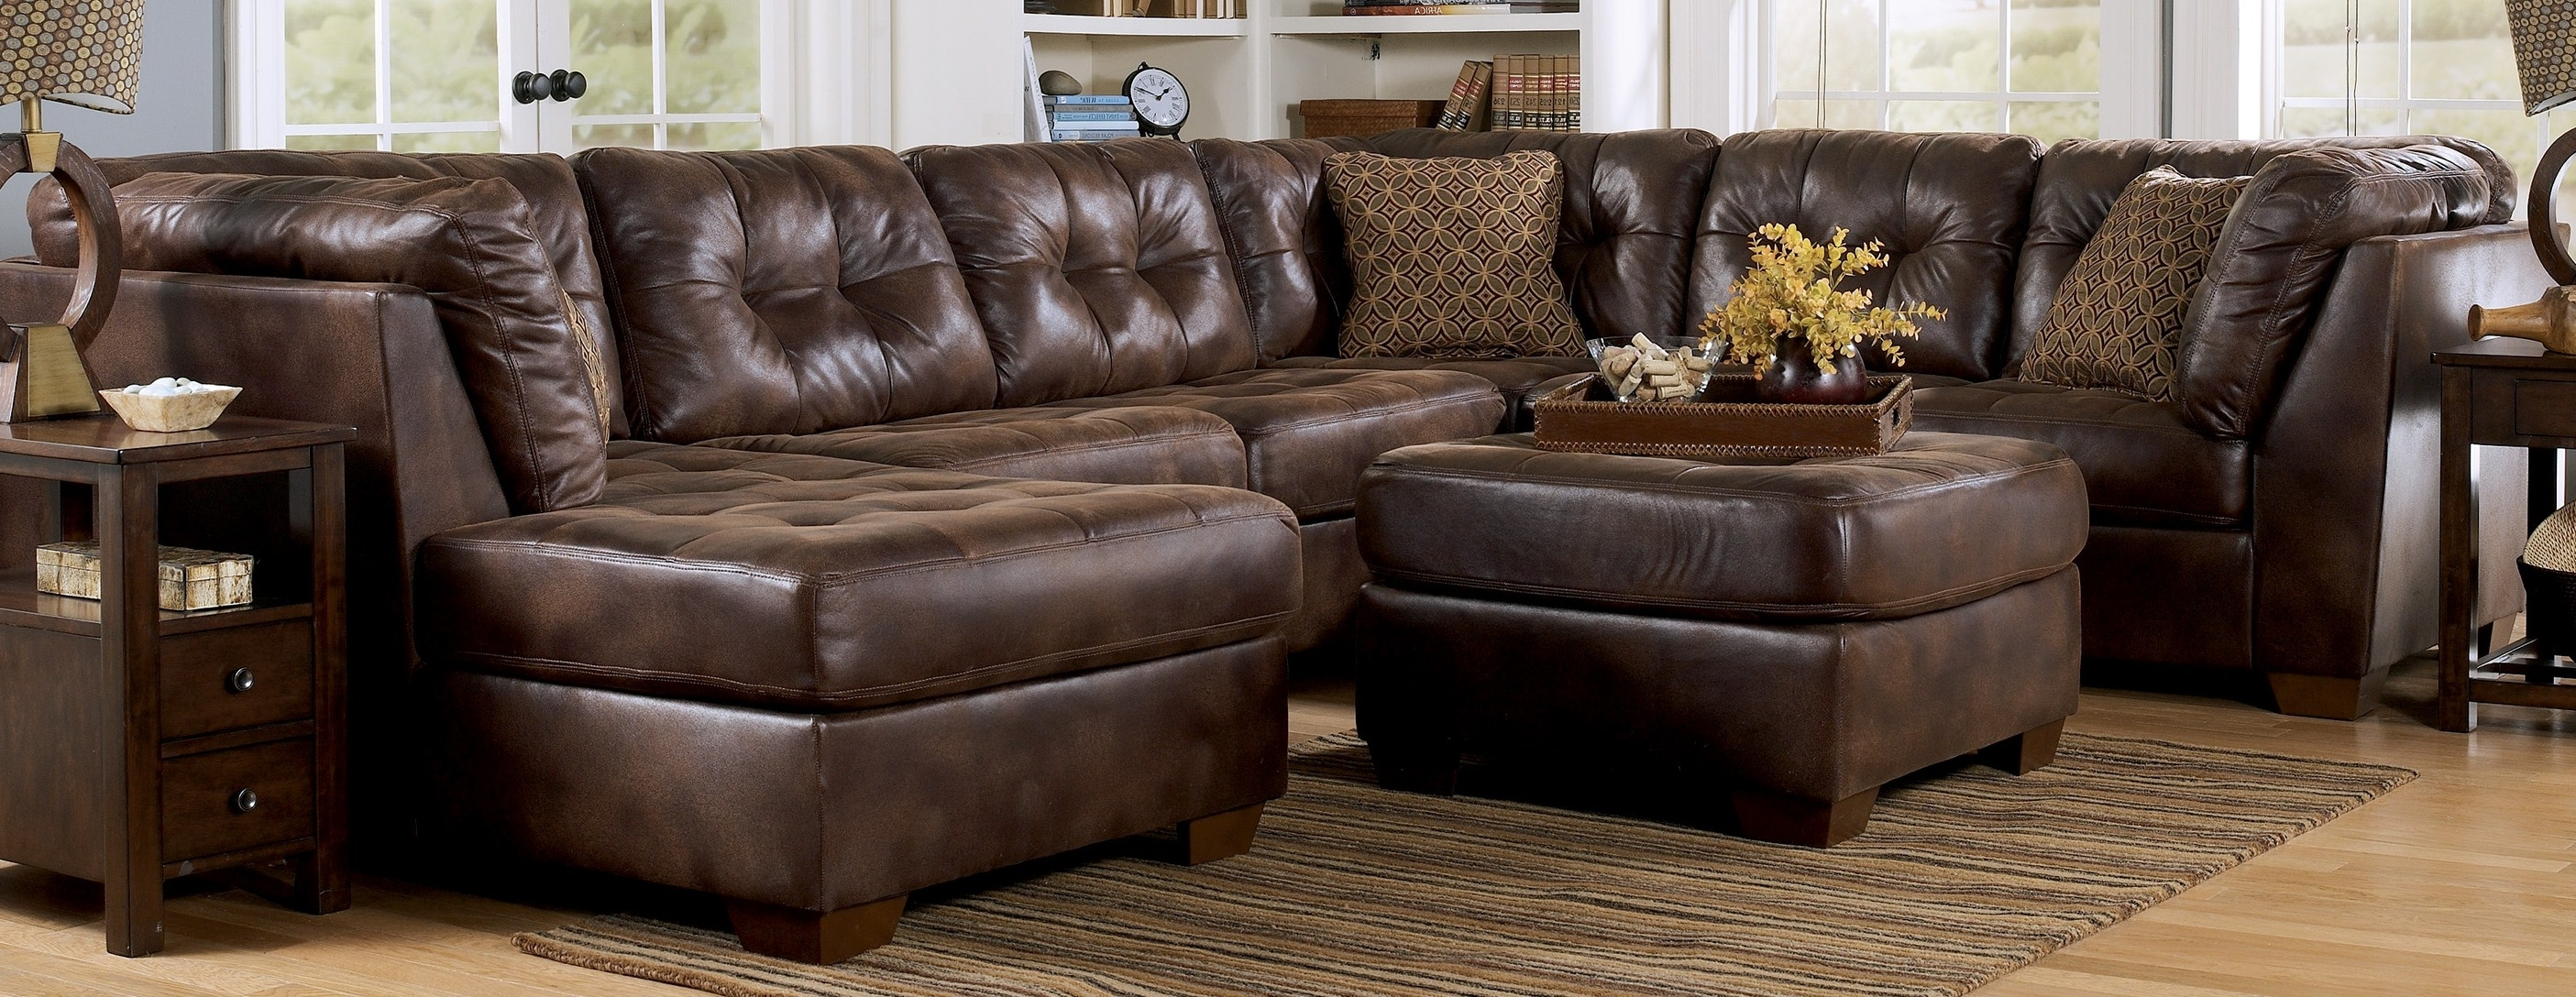 Sectionals With Chaise And Ottoman Inside Best And Newest Big Lots Recliners Ashley Furniture Sectional Sofas Cheap (View 15 of 20)